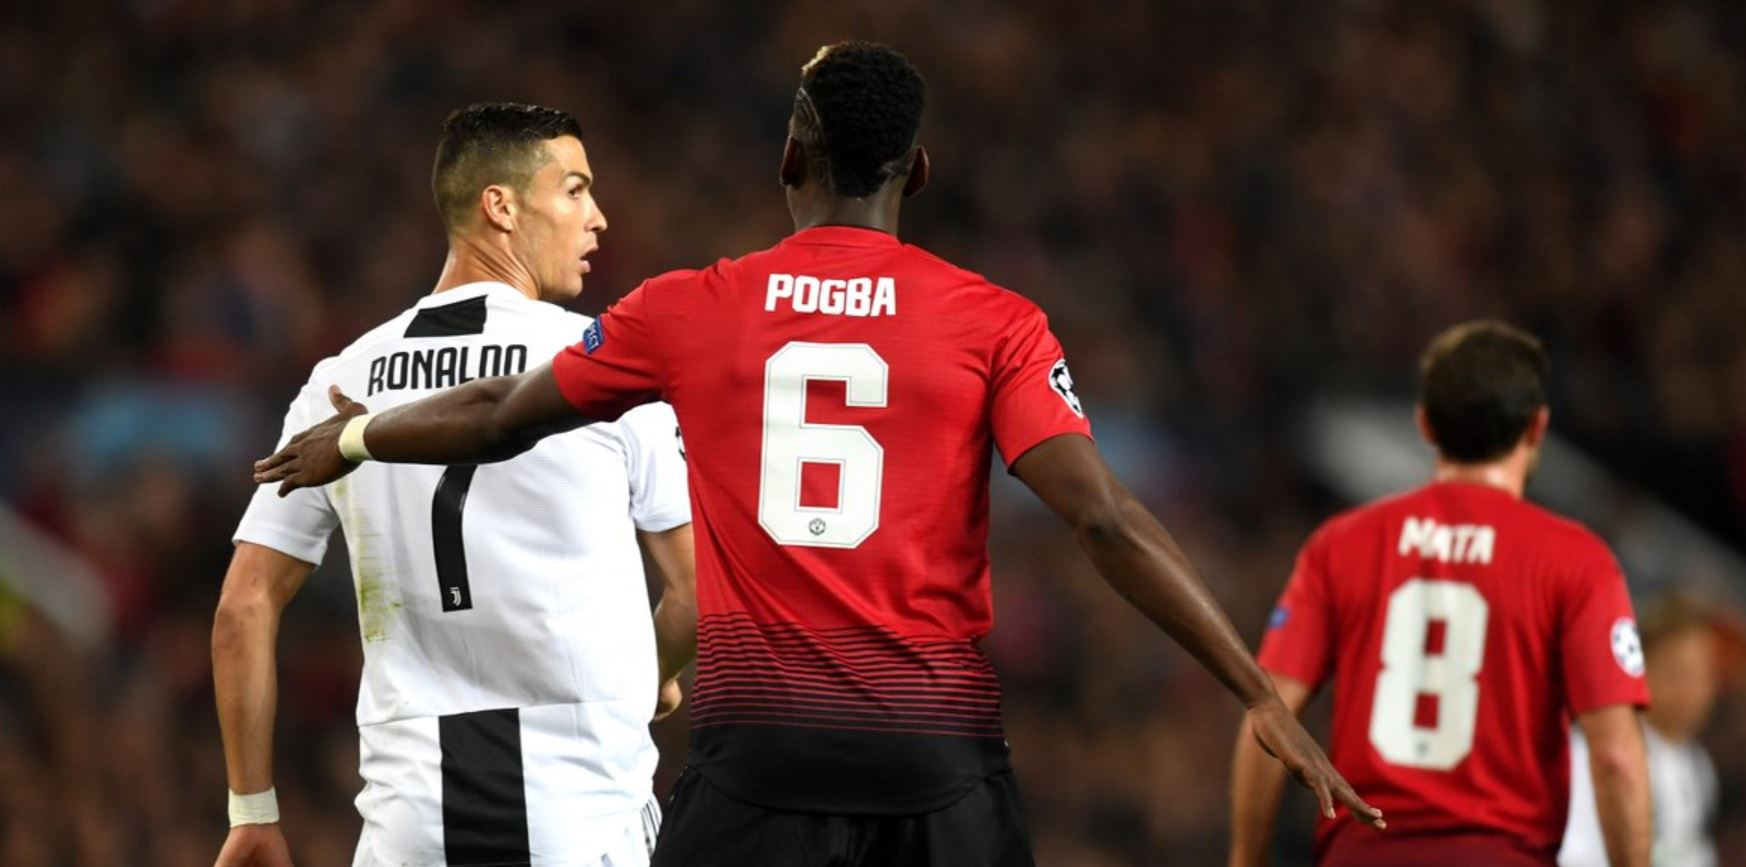 Roy Keane has jumped to the defence of Paul pogba